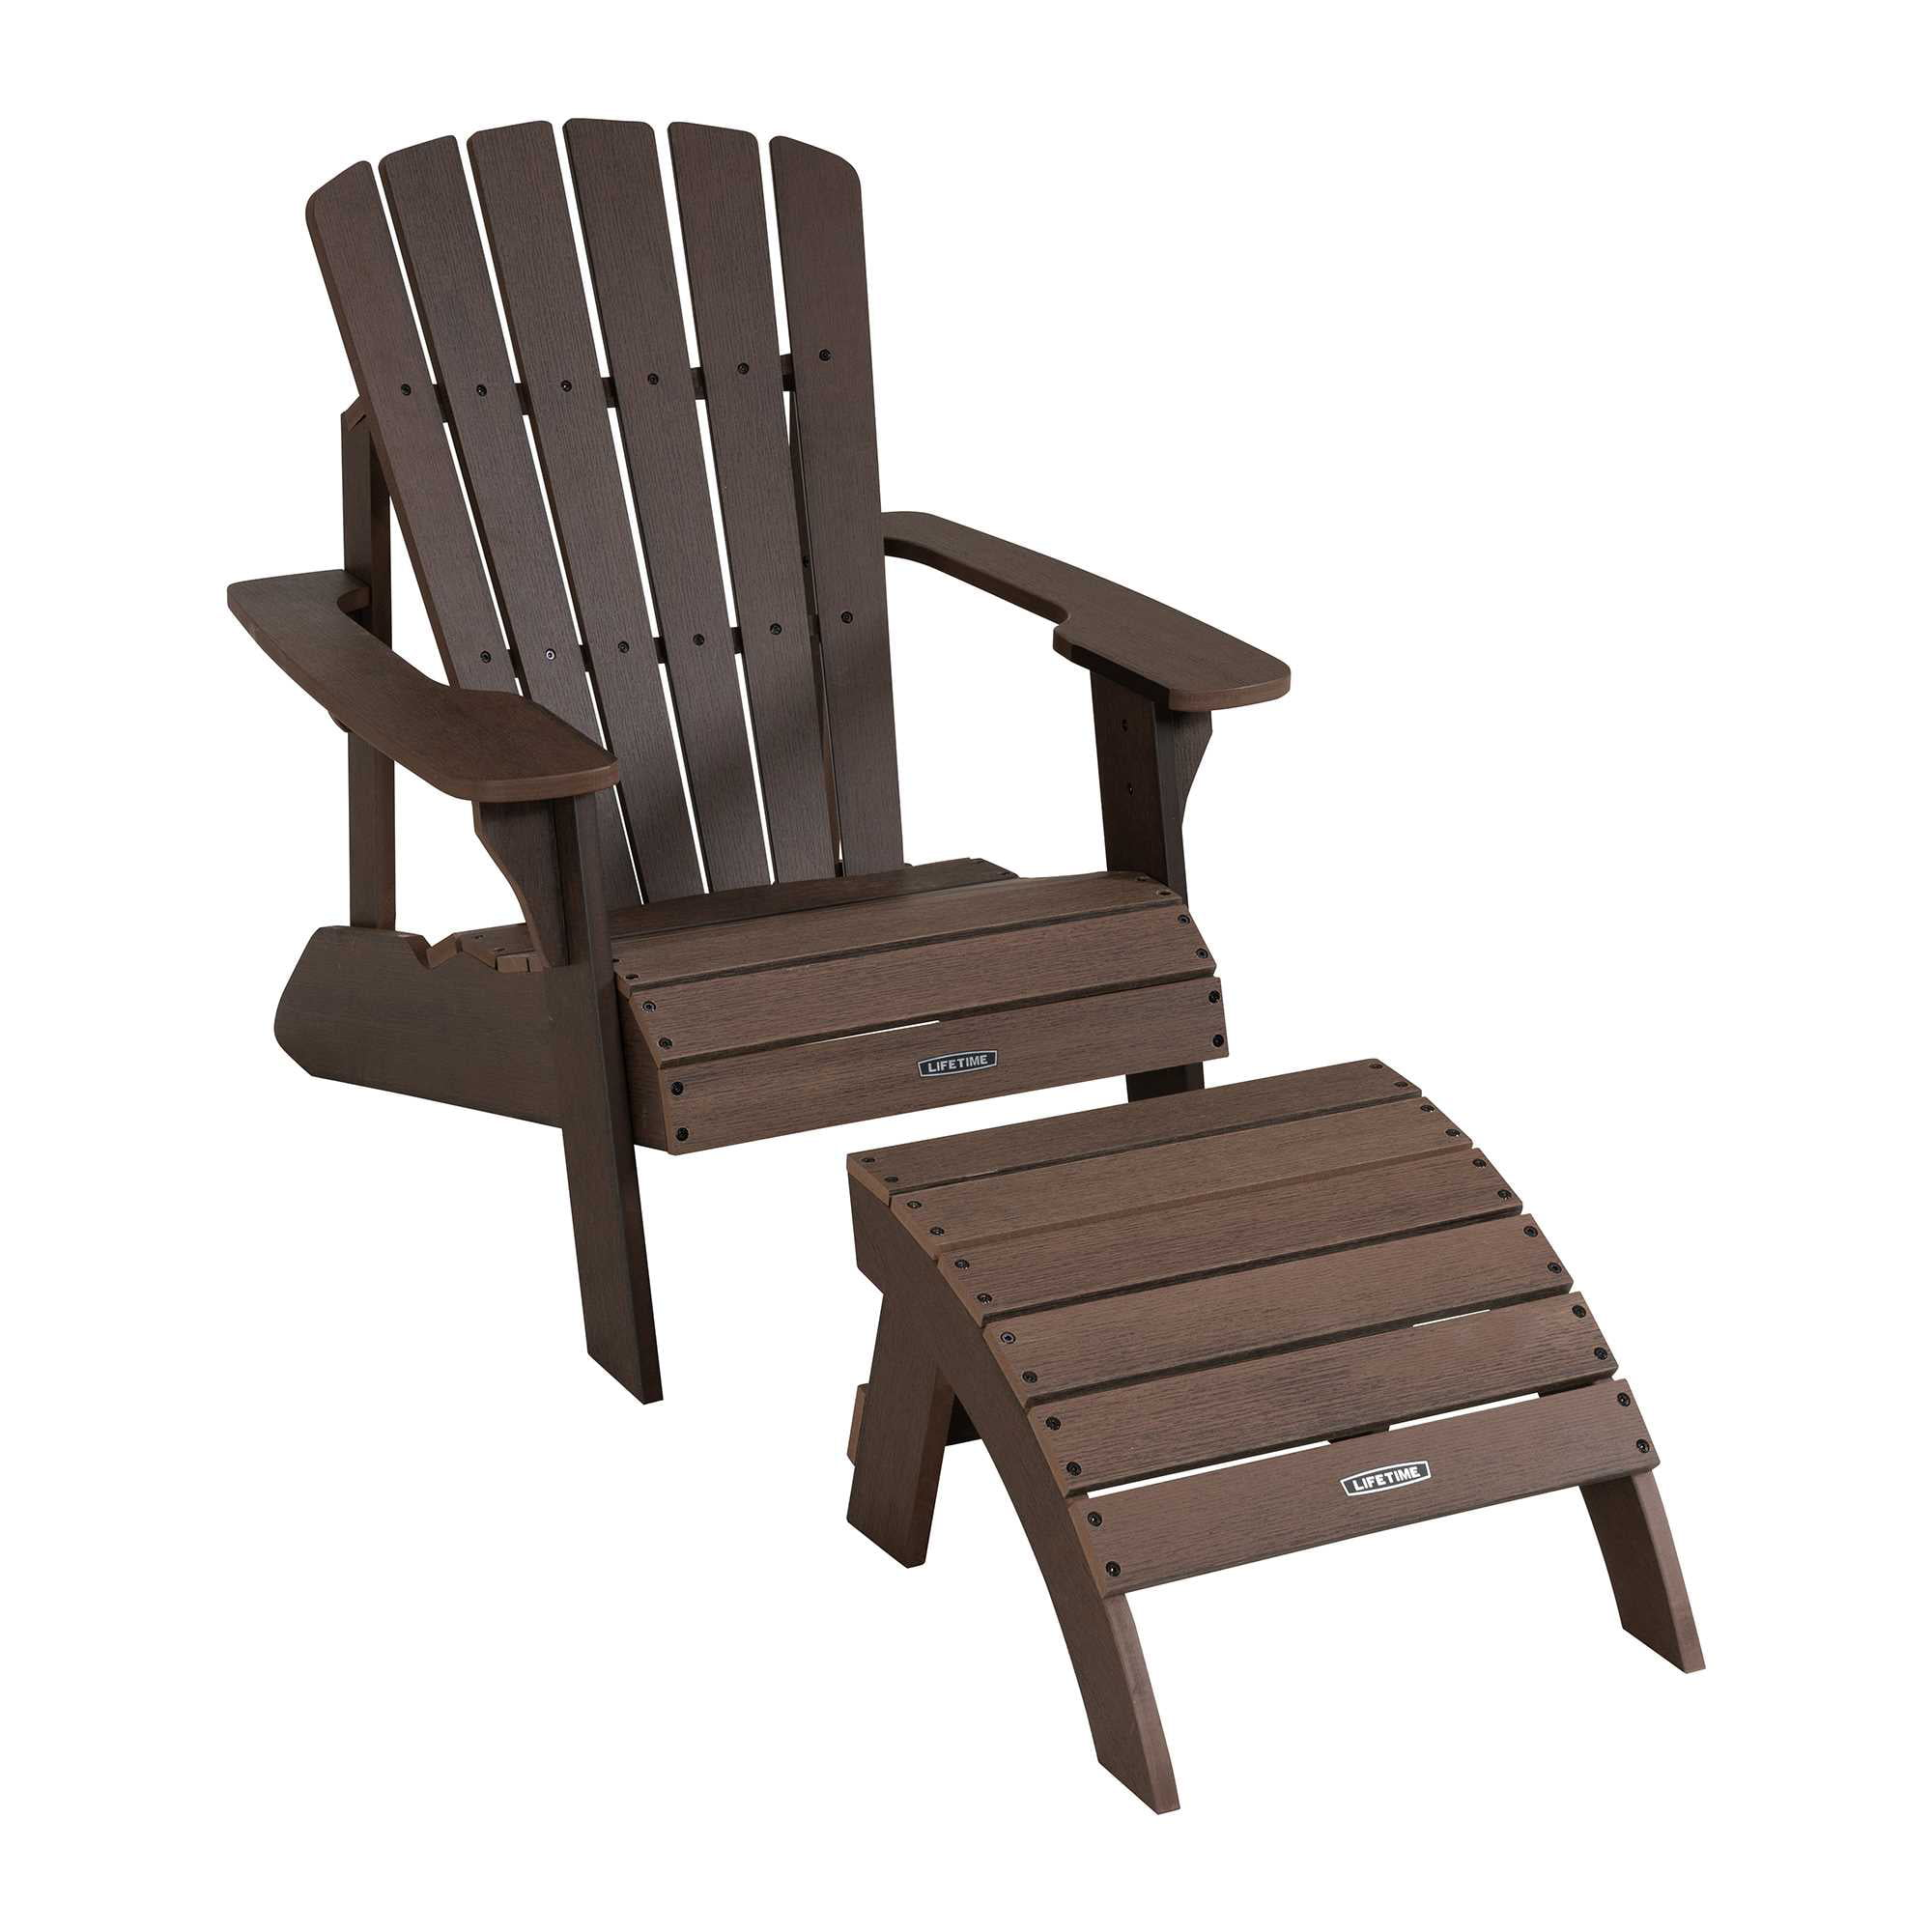 Lifetime Adirondack Chairs Lifetime Adirondack Chair And Ottoman Set Rustic Brown 60294